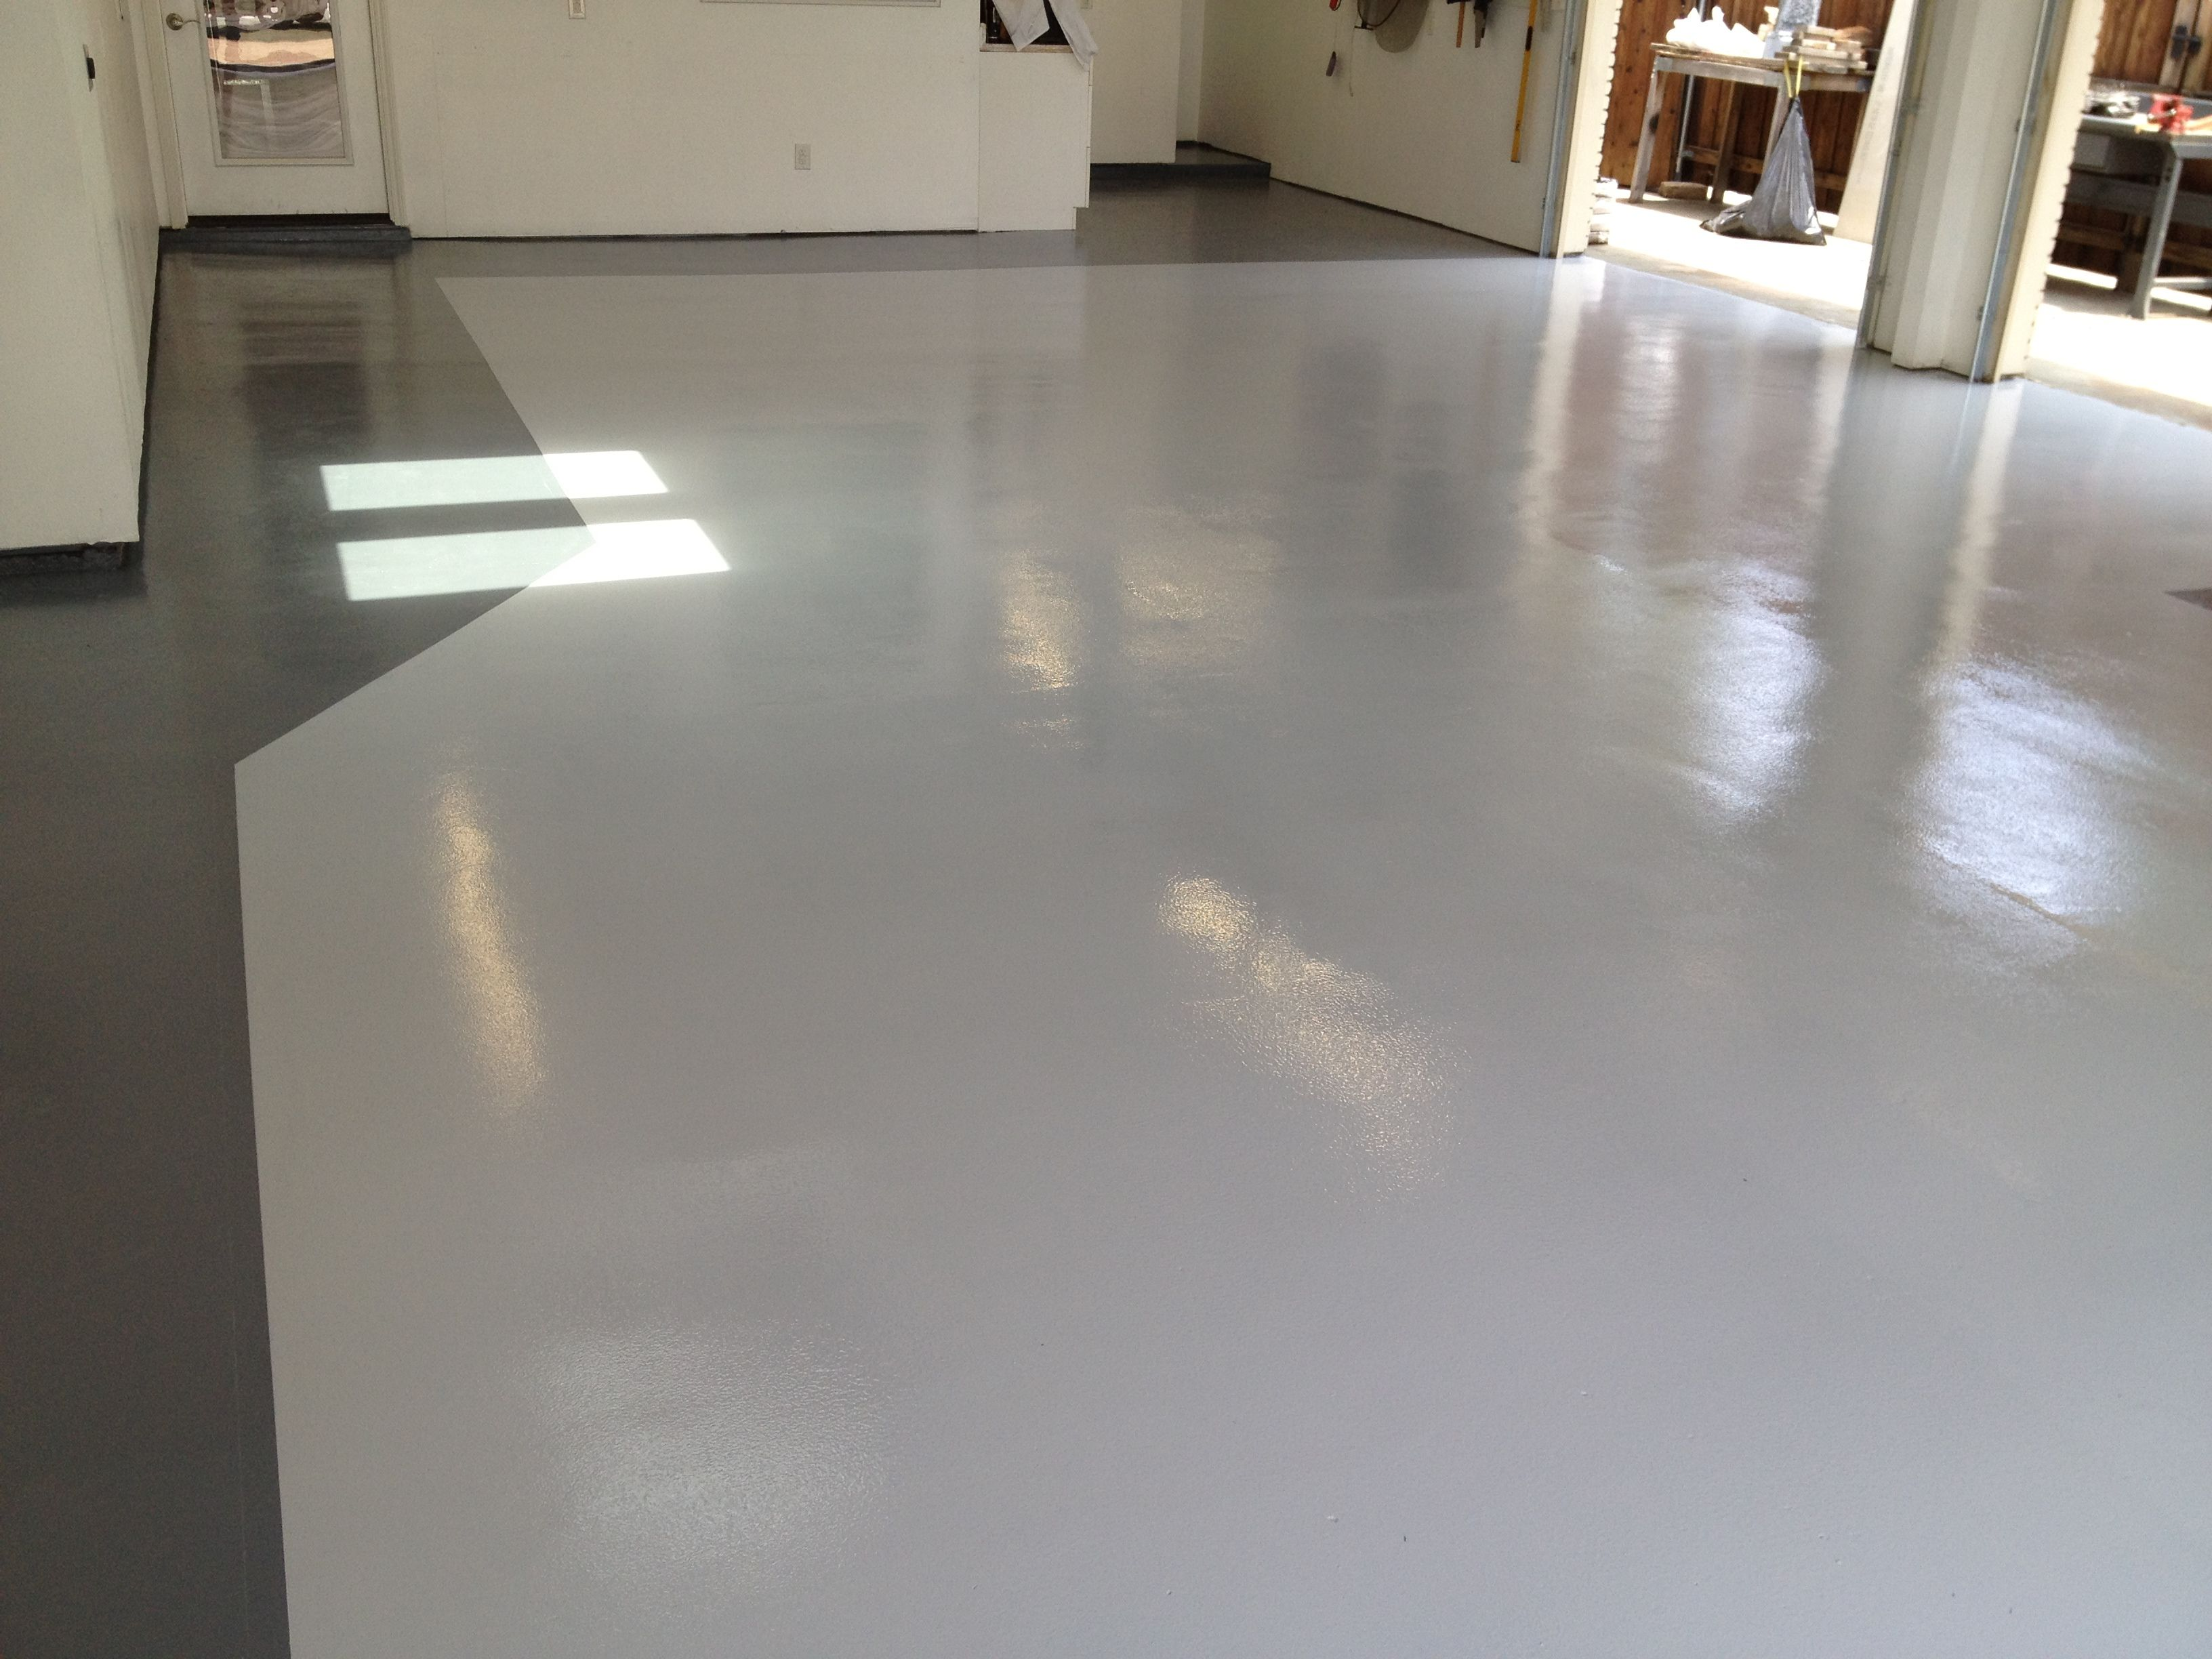 2tone gray color floor. Base is a gray colored epoxy